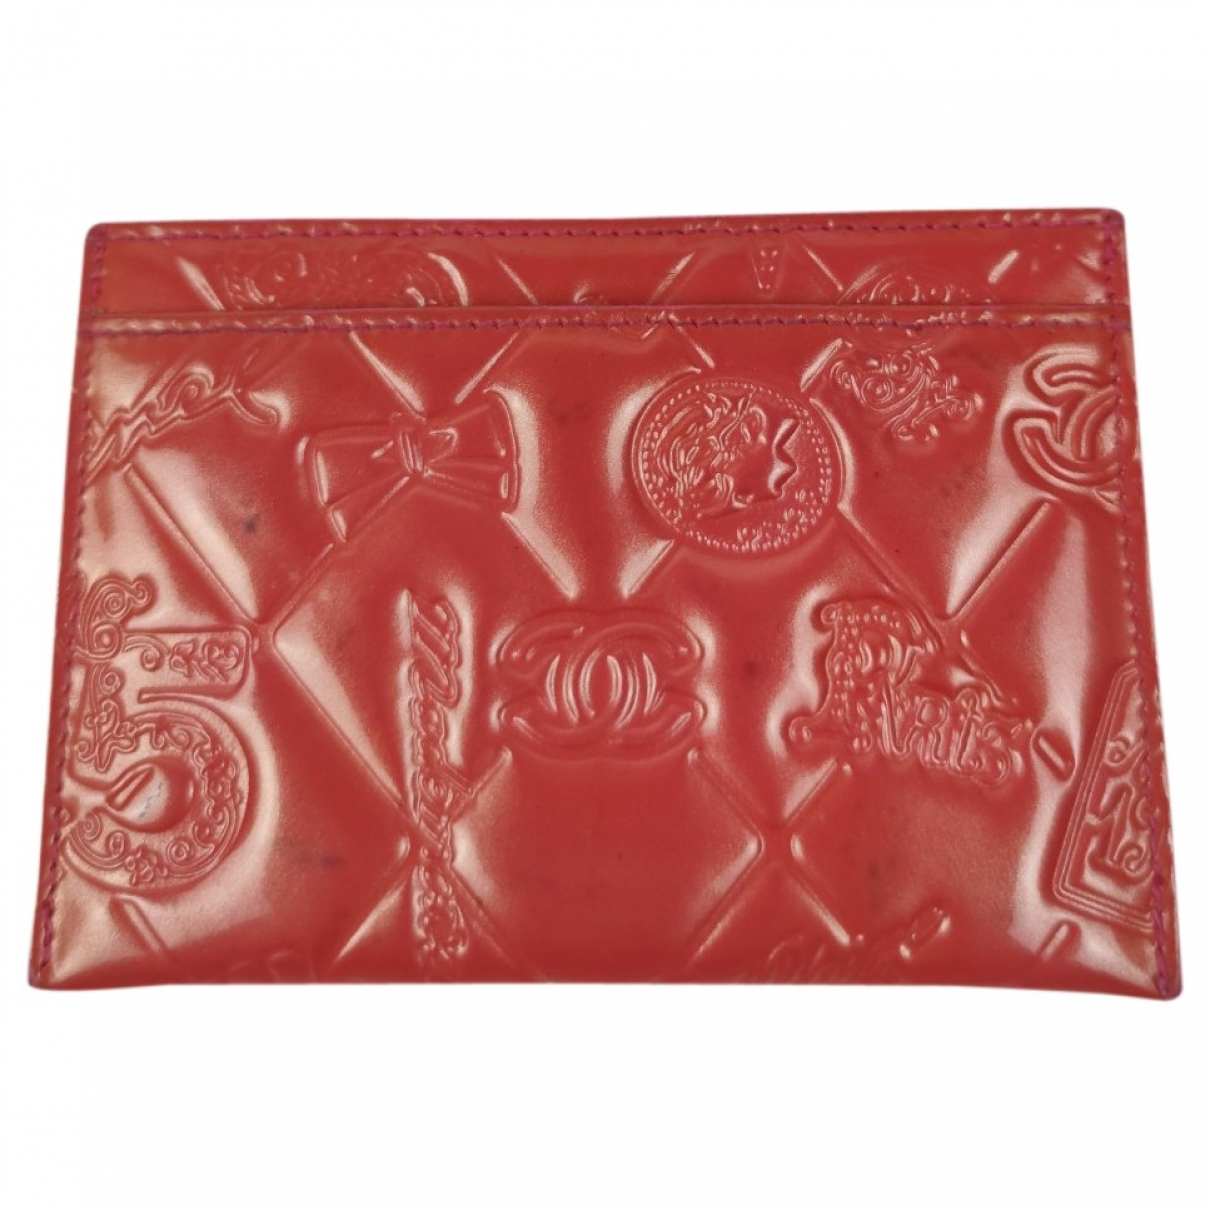 Chanel \N Red Patent leather Purses, wallet & cases for Women \N